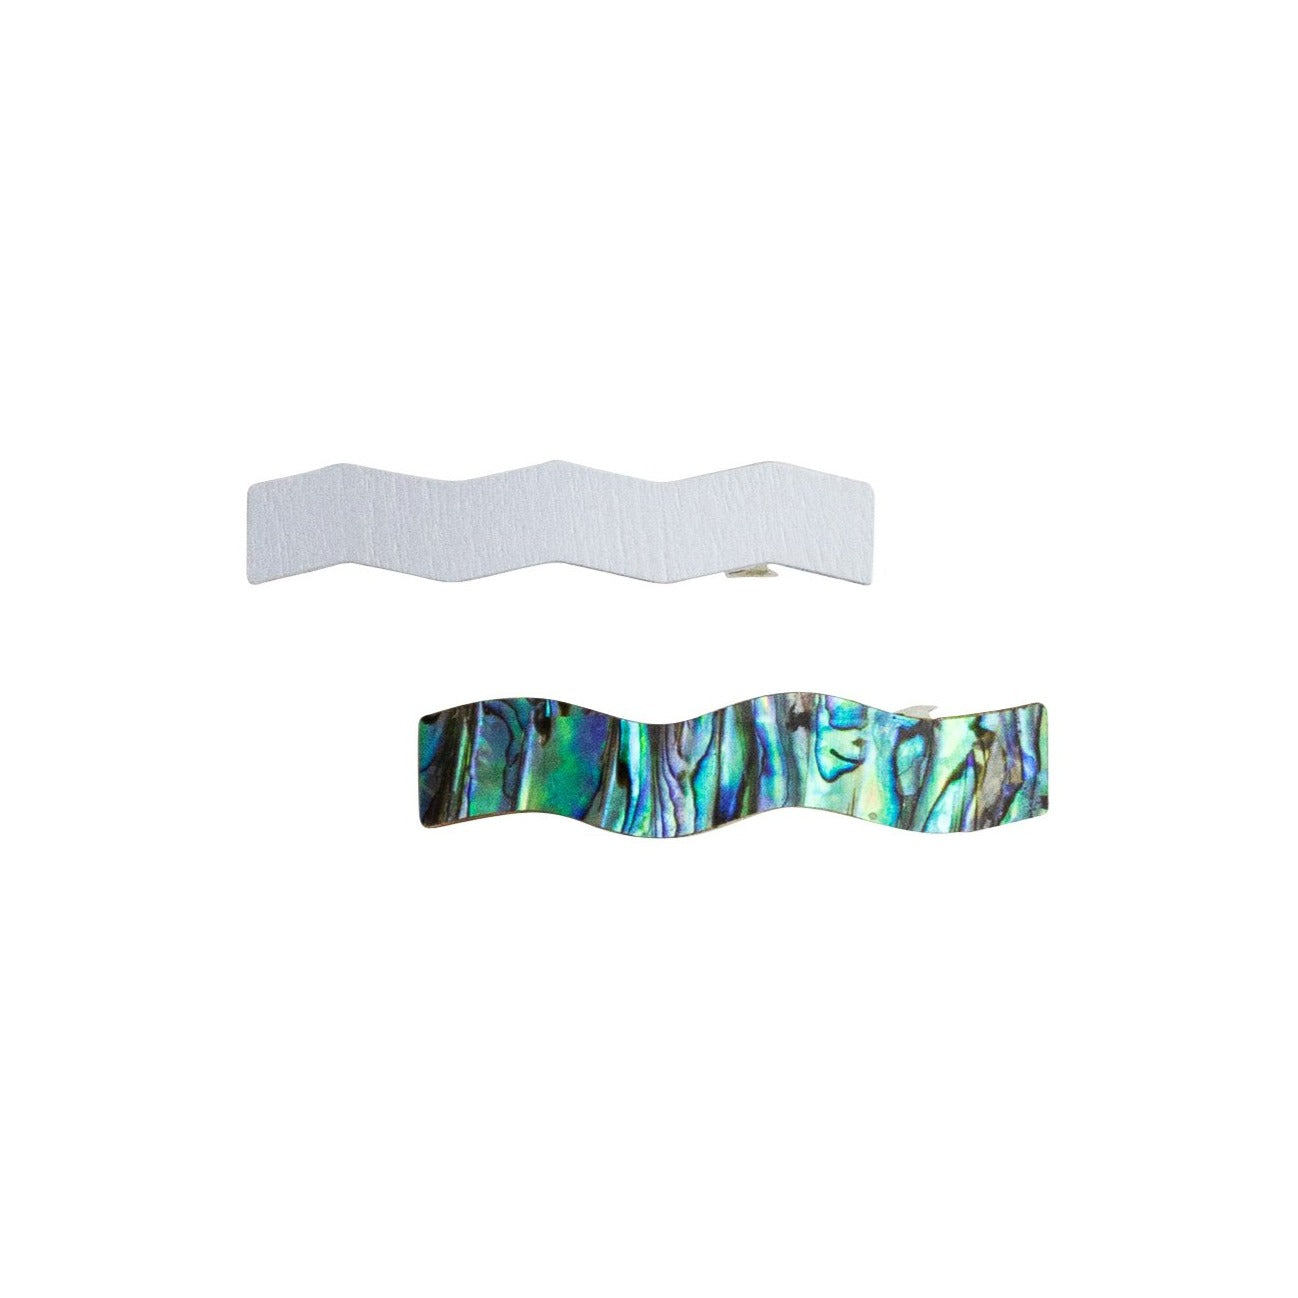 Set of 2 Pale Blue Hair Clips by Wolf & Moon